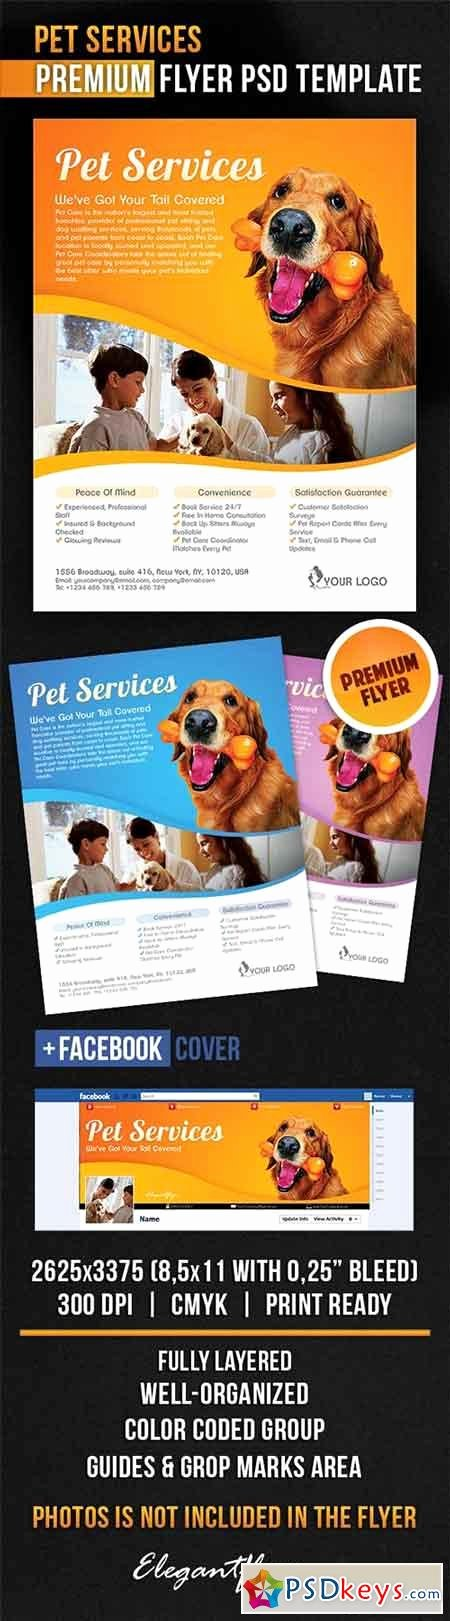 Facebook Ad Template Psd Fresh Pet Services Flyer Psd Template Cover Free